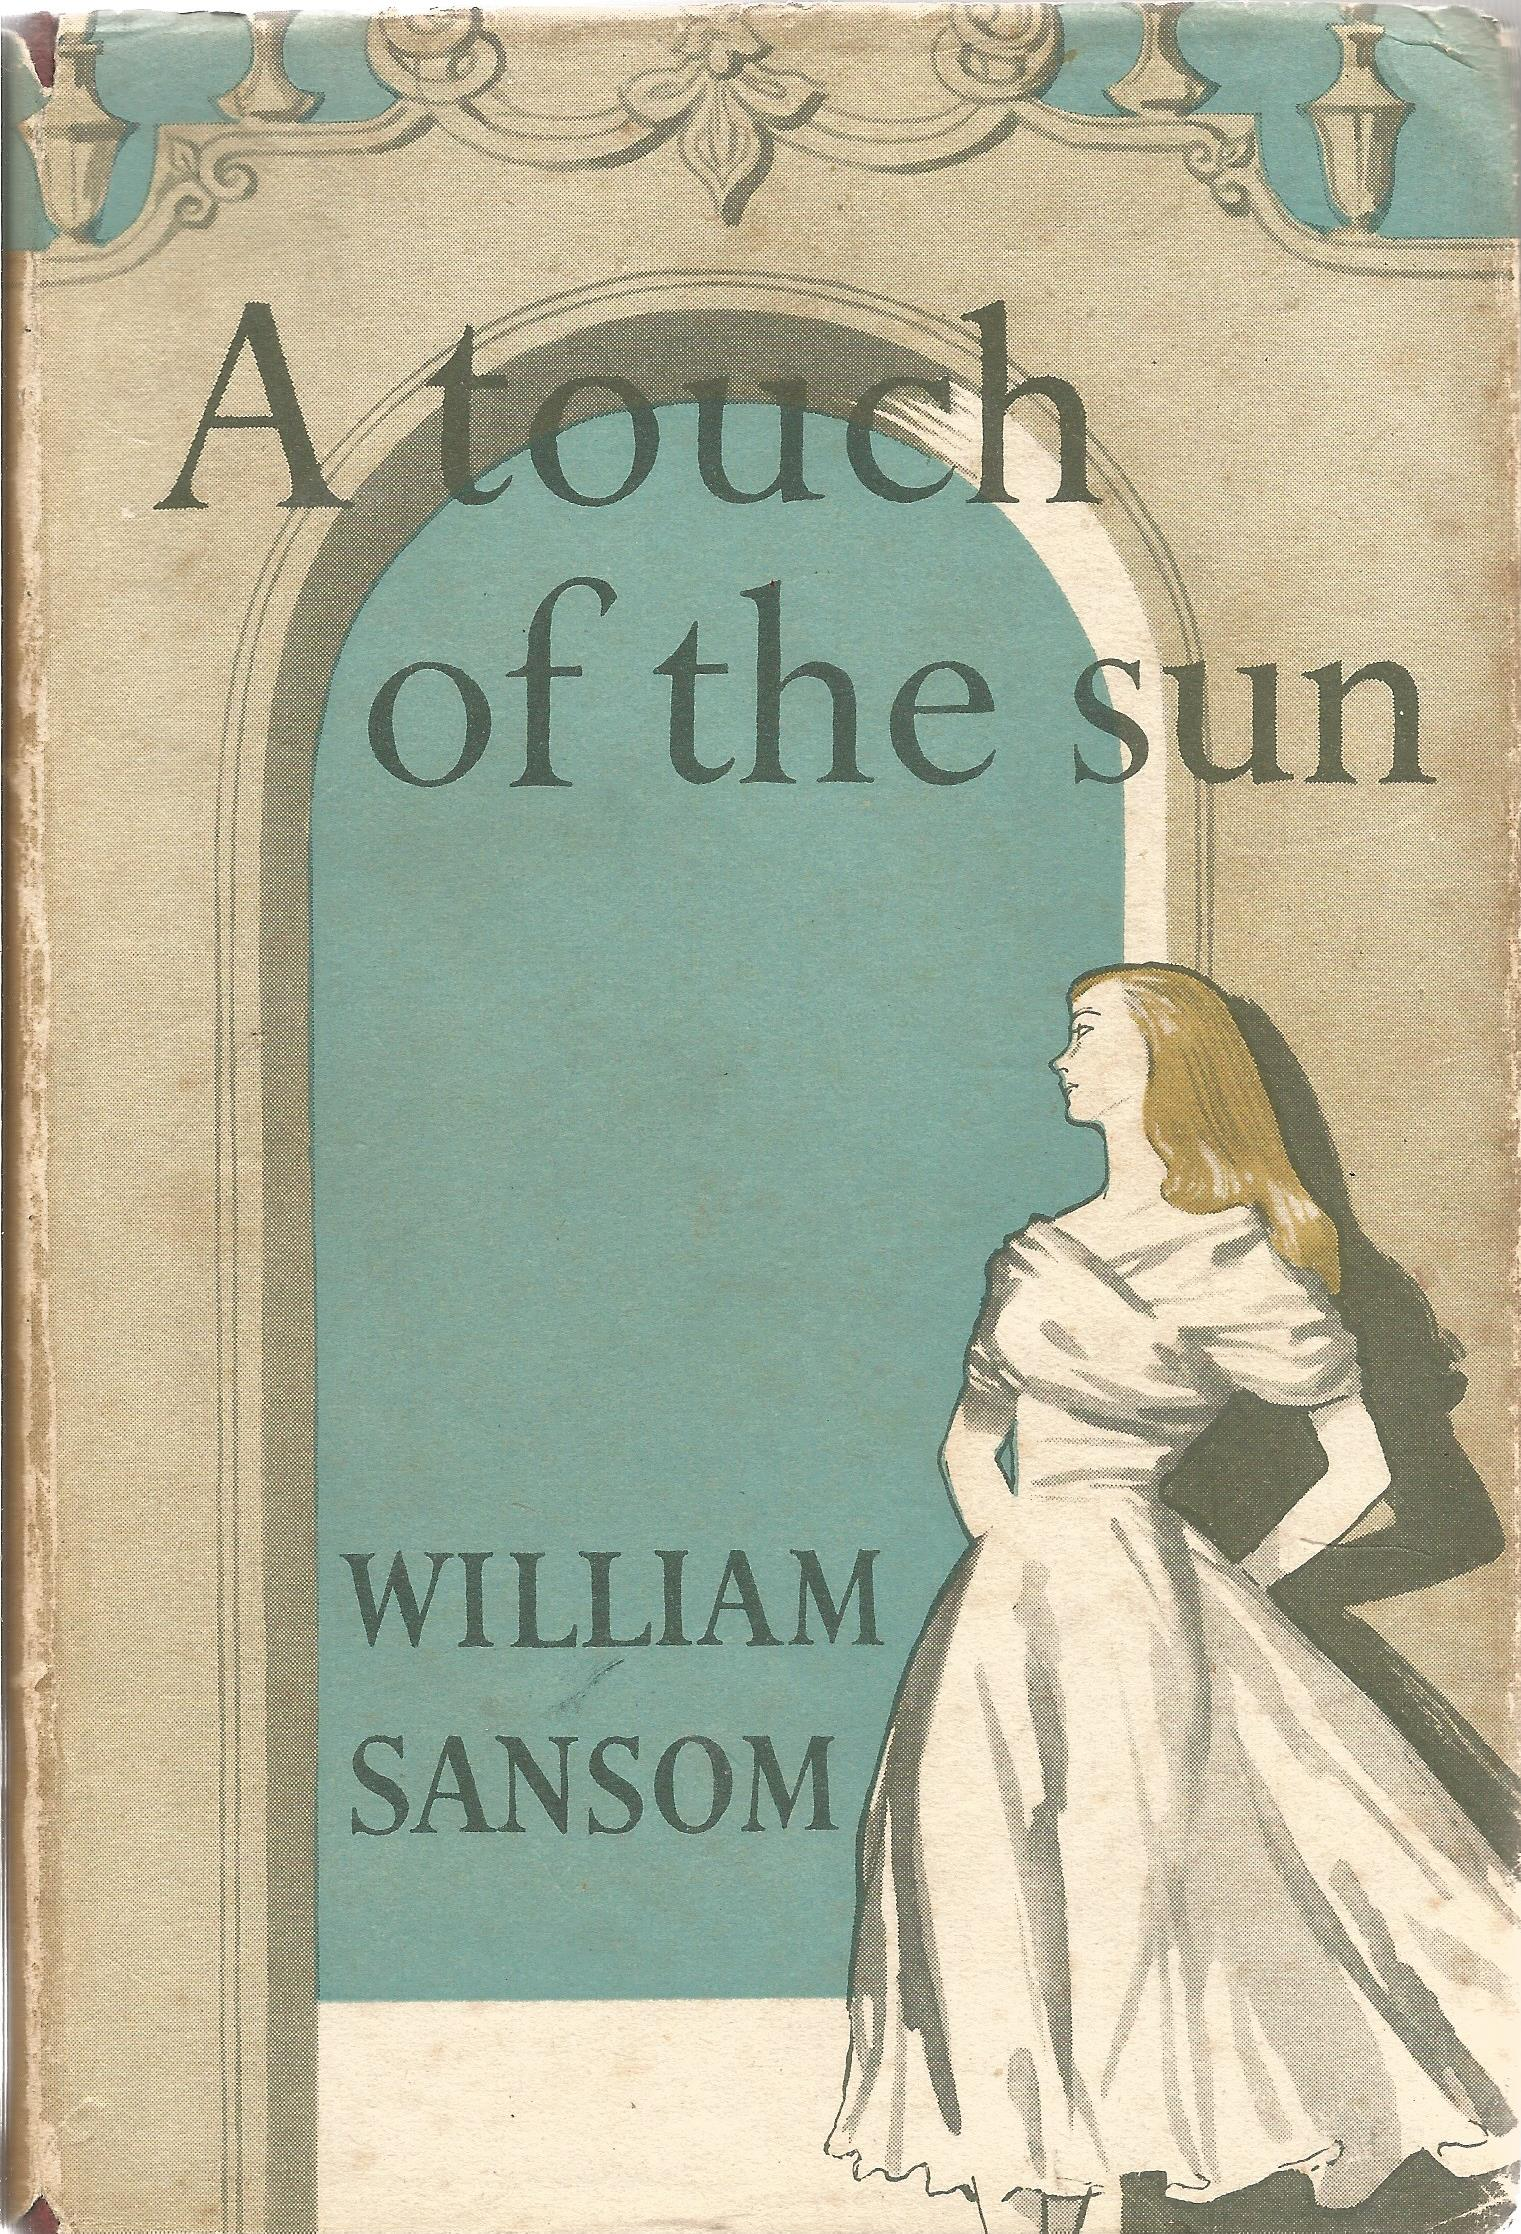 William Sansom Hardback Book A Touch of the Sun 1952 signed by the Author on the Title Page some